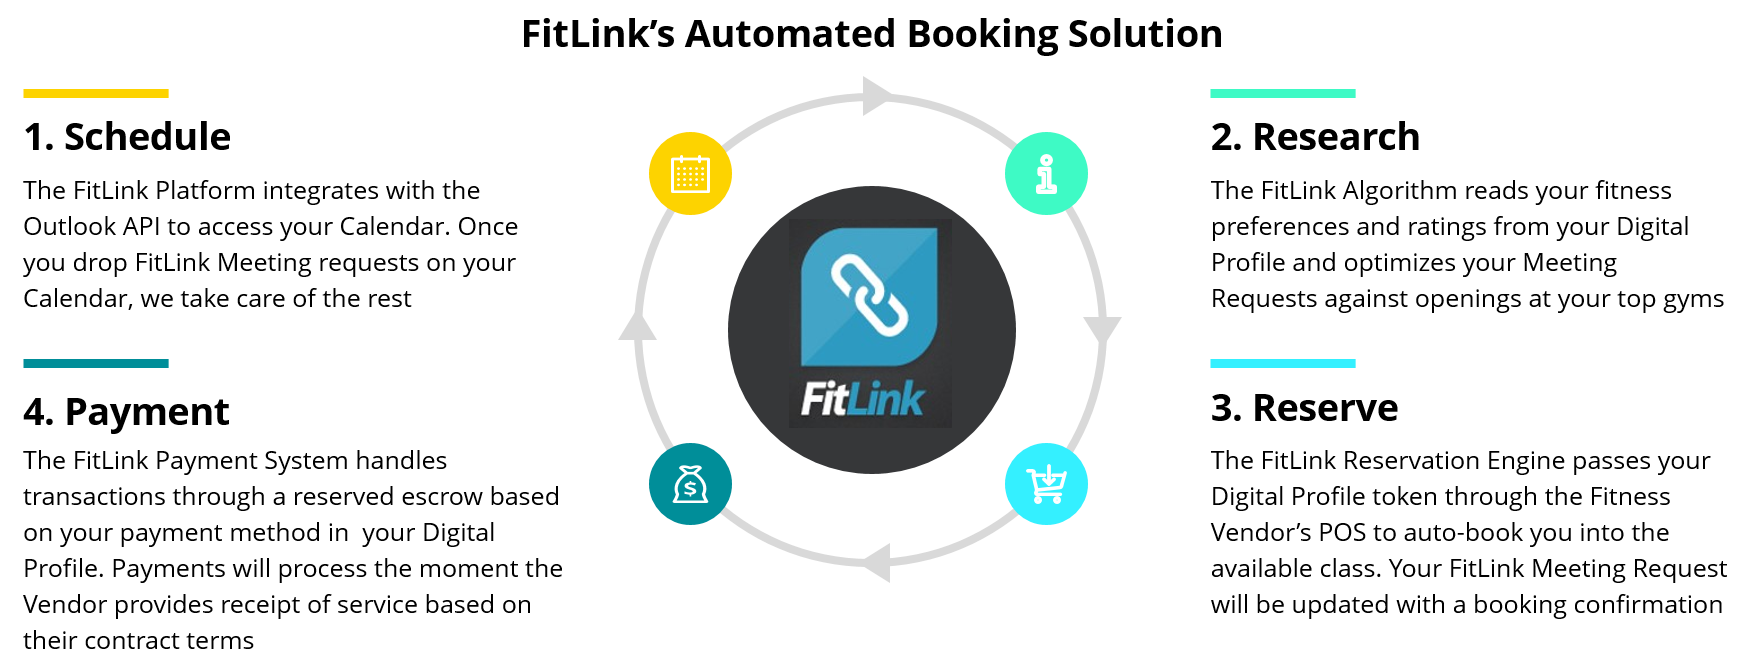 booking solution 2.png